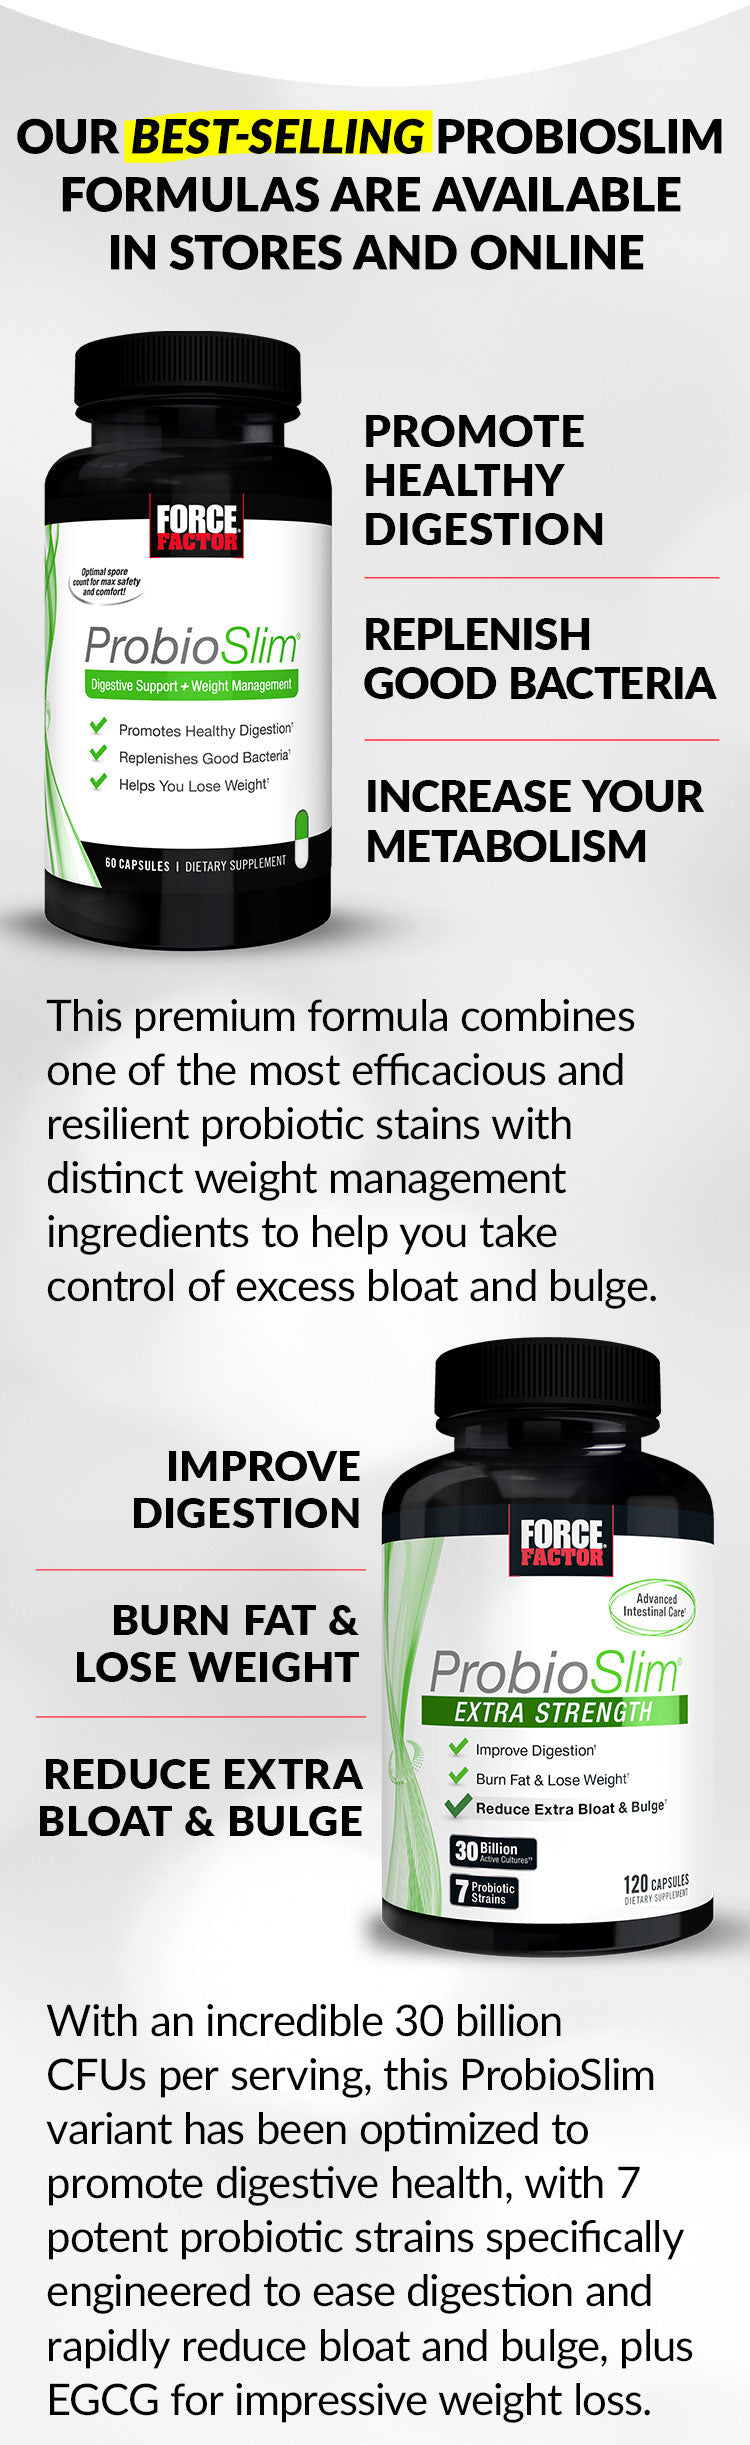 OUR BEST-SELLING PROBIOSLIM FORMULAS ARE AVAILABLE IN STORES AND ONLINE. Promote Healthy Digestion, Replenish Good Bacteria, Increase Your Metabolism. This premium formula combines one of the most efficacious and resilient probiotic stains with distinct weight management ingredients to help you take control of excess bloat and bulge. Improve Digestion, Burn Fat & Lose Weight, Reduce Extra Bloat and Bulge. With an incredible 30 billion CFUs per serving, this ProbioSlim variant has been optimized to promote digestive health, with 7 potent probiotic strains specifically engineered to ease digestion and rapidly reduce bloat and bulge, plus EGCG for impressive weight loss.